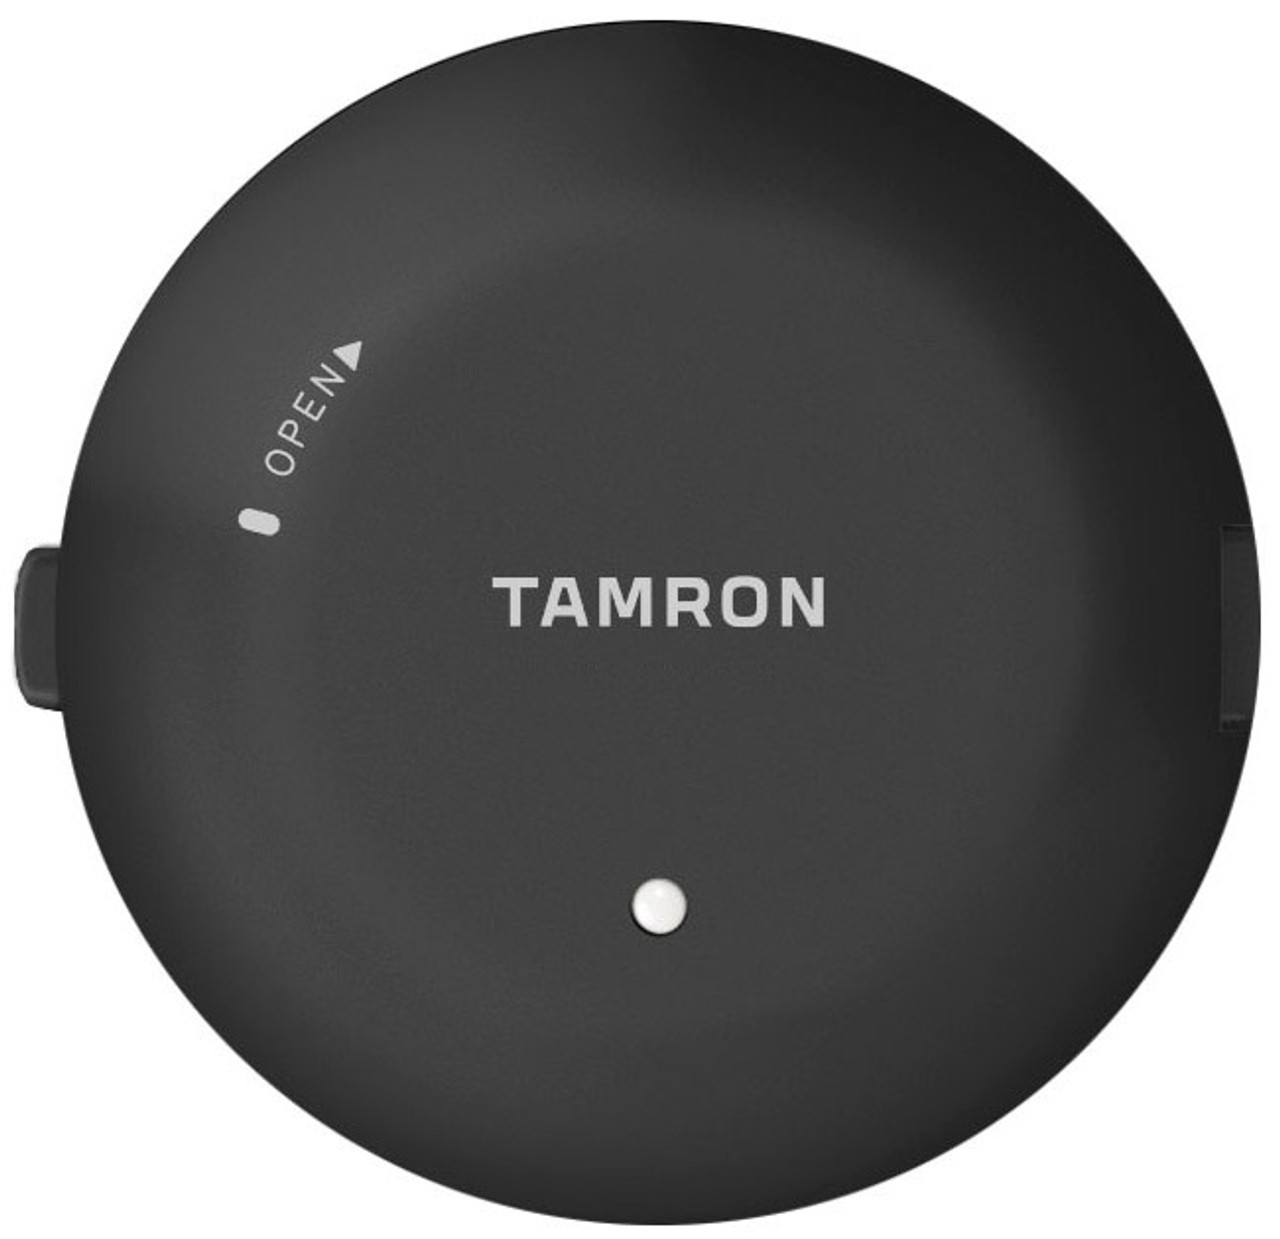 Tamron TAP-in Console for Nikon F Lenses